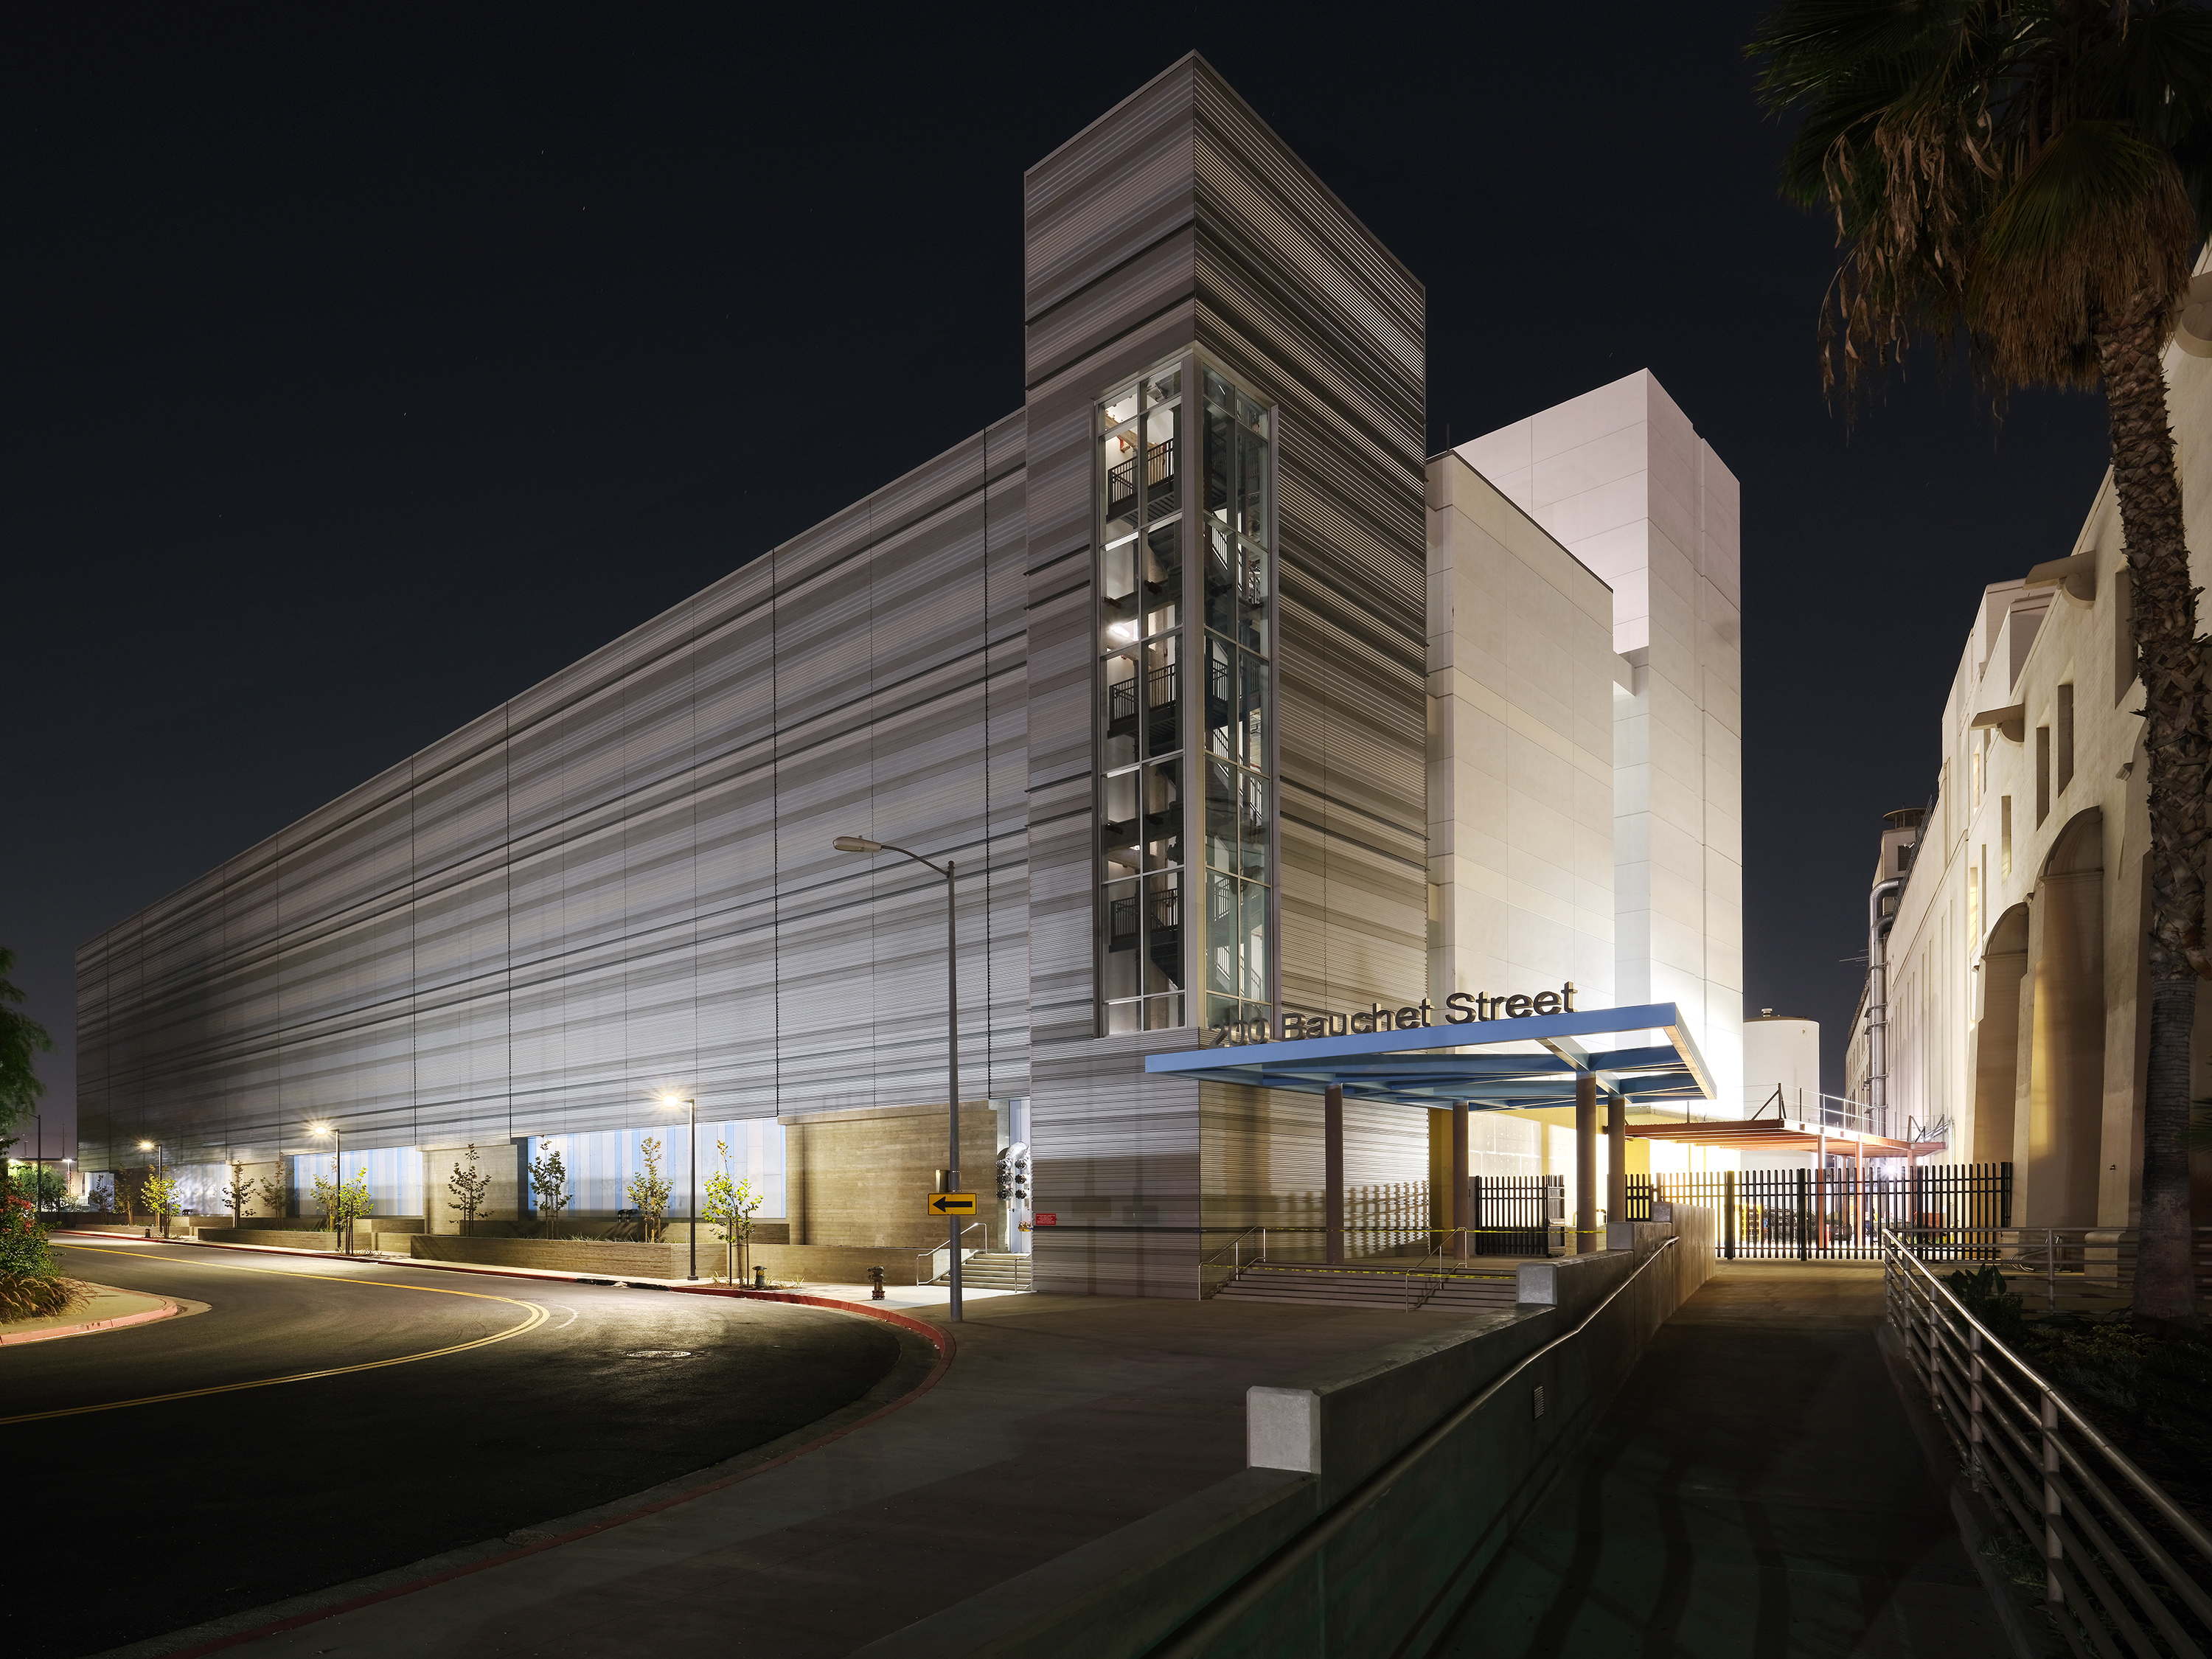 Exterior building and entrance at night